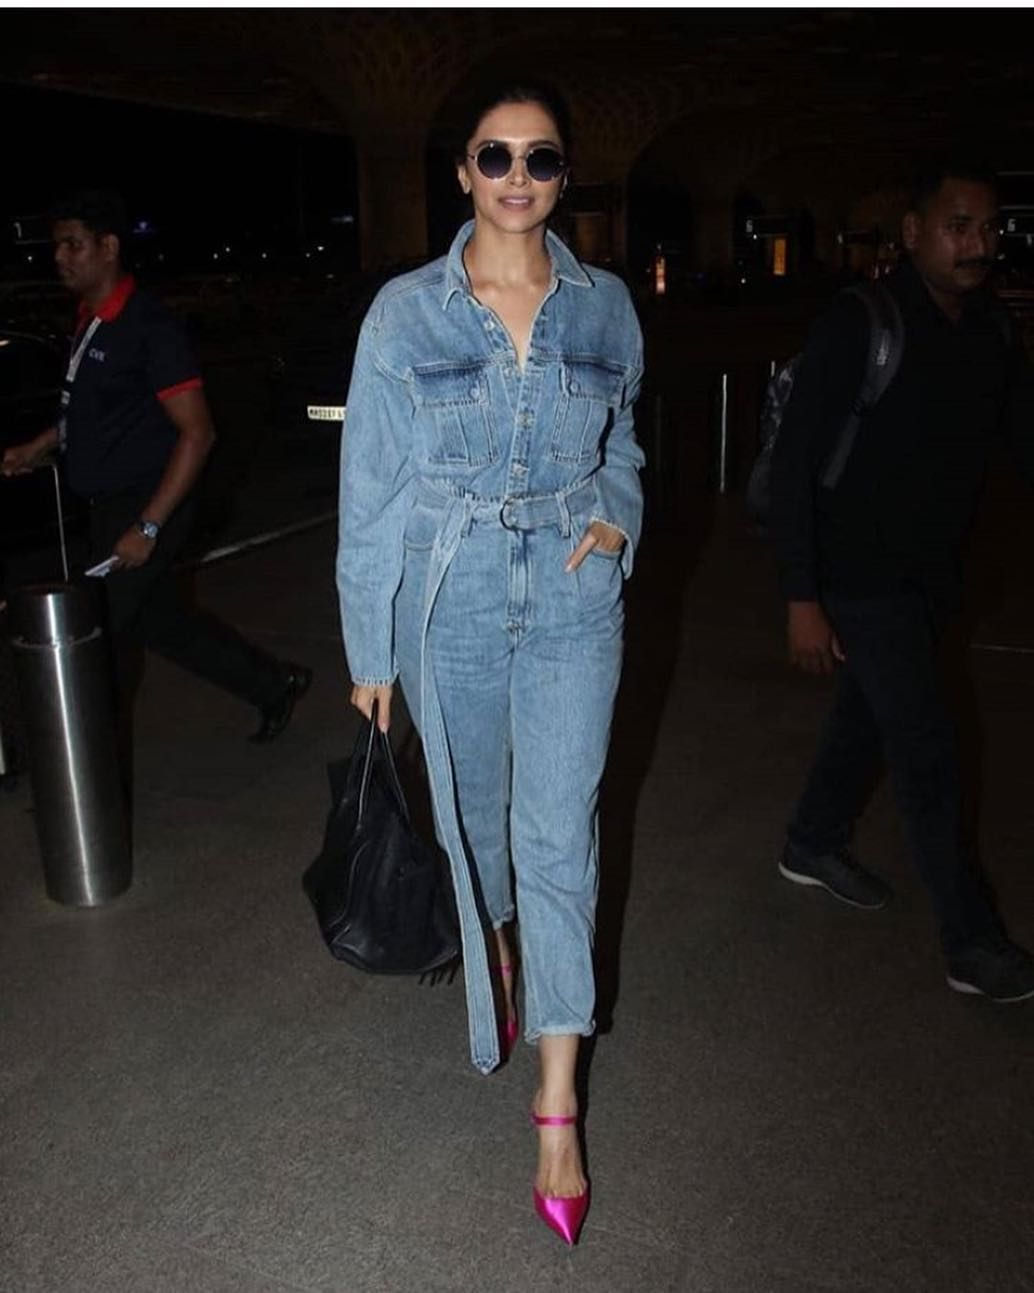 Deepika Padukone Rocks An All Denim Jumpsuit Like A Pro As She Jets Off To New York For Met Gala 2019 Hungryboo Denim Jumpsuit Outfit Denim Jumpsuit Deepika Padukone Style